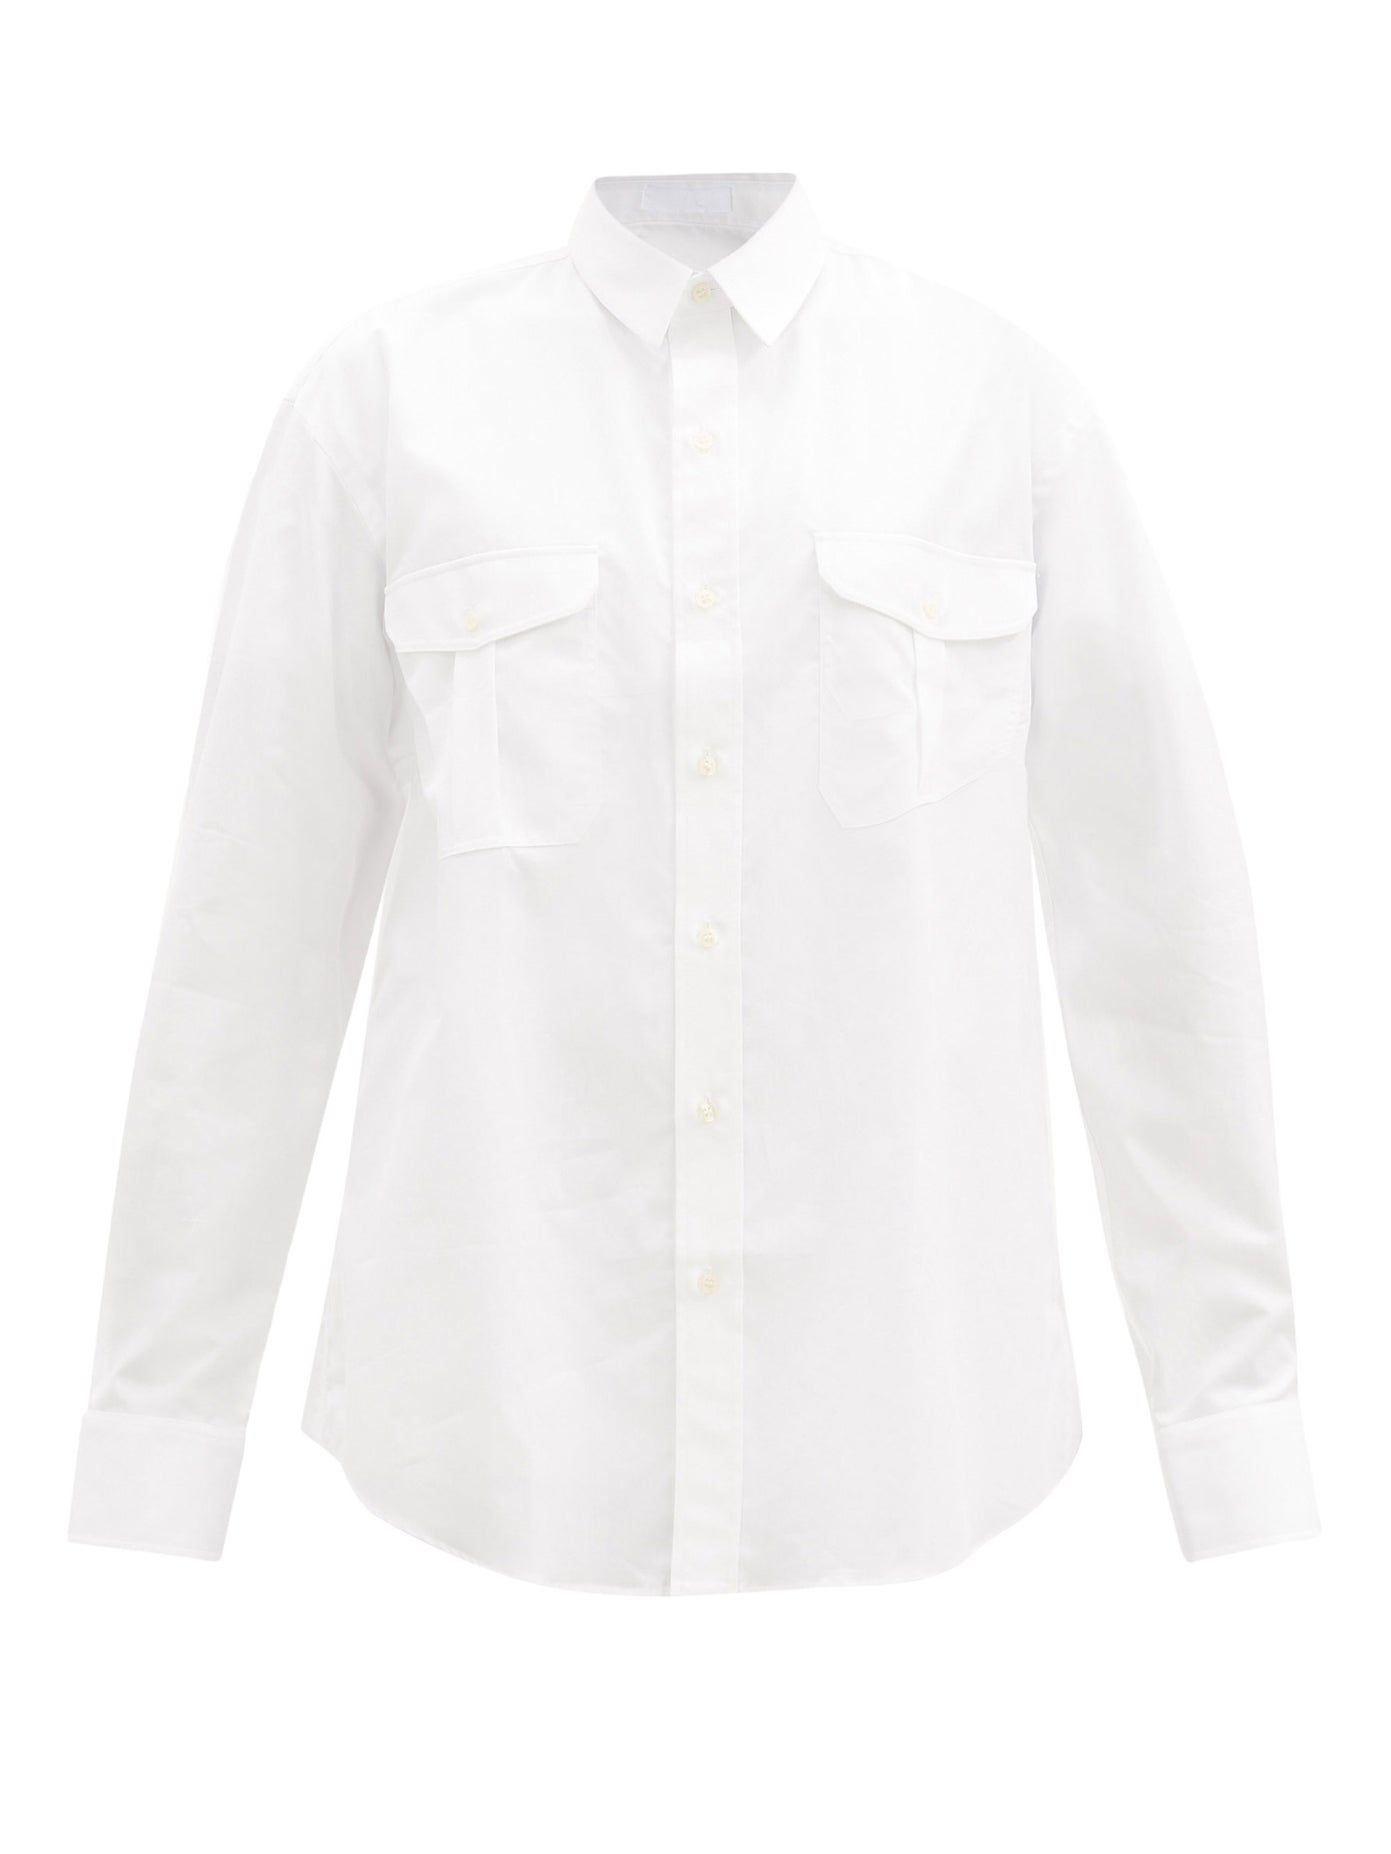 Release 03 oversized cotton-poplin shirt by WARDROBE.NYC, available on matchesfashion.com for $390 Bella Hadid Outerwear Exact Product